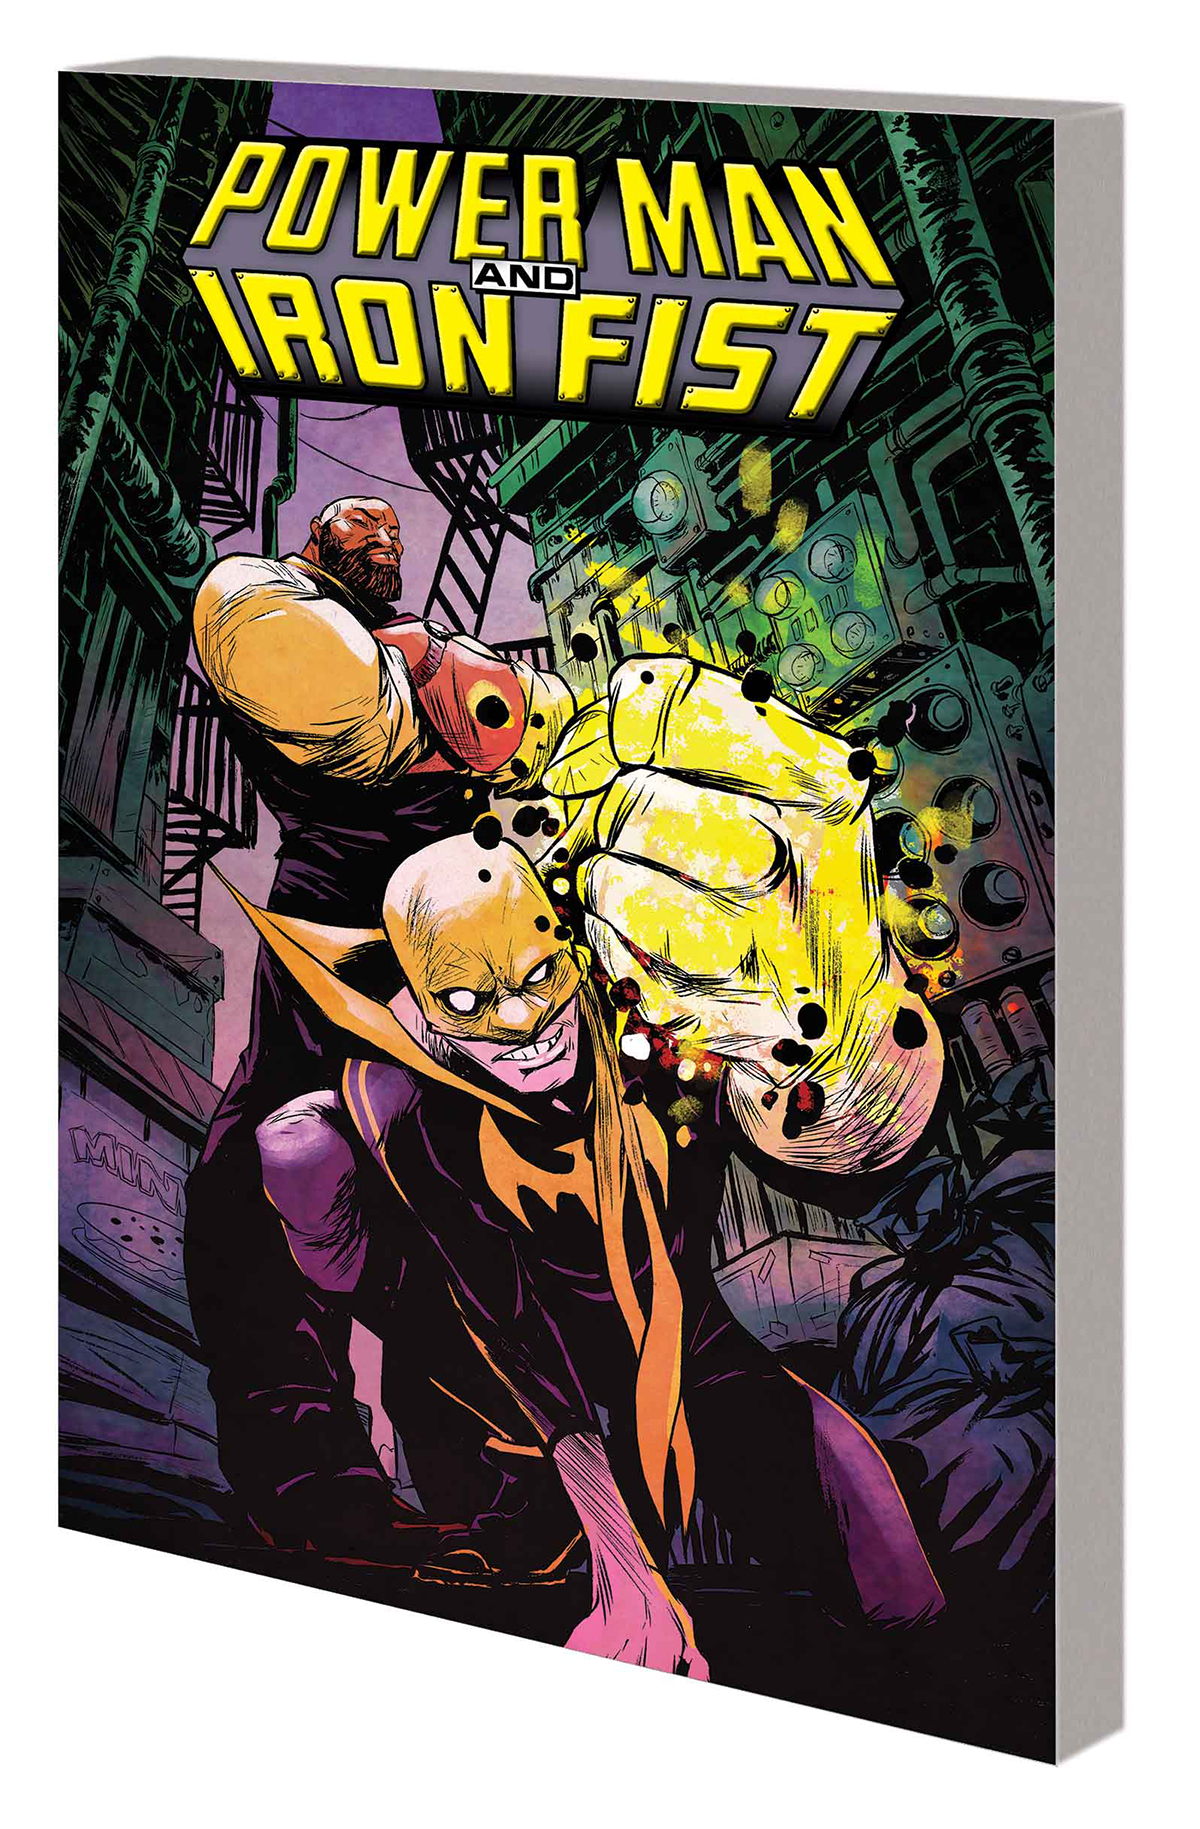 POWER MAN AND IRON FIST TP VOL 01 BOYS ARE BACK IN TOWN